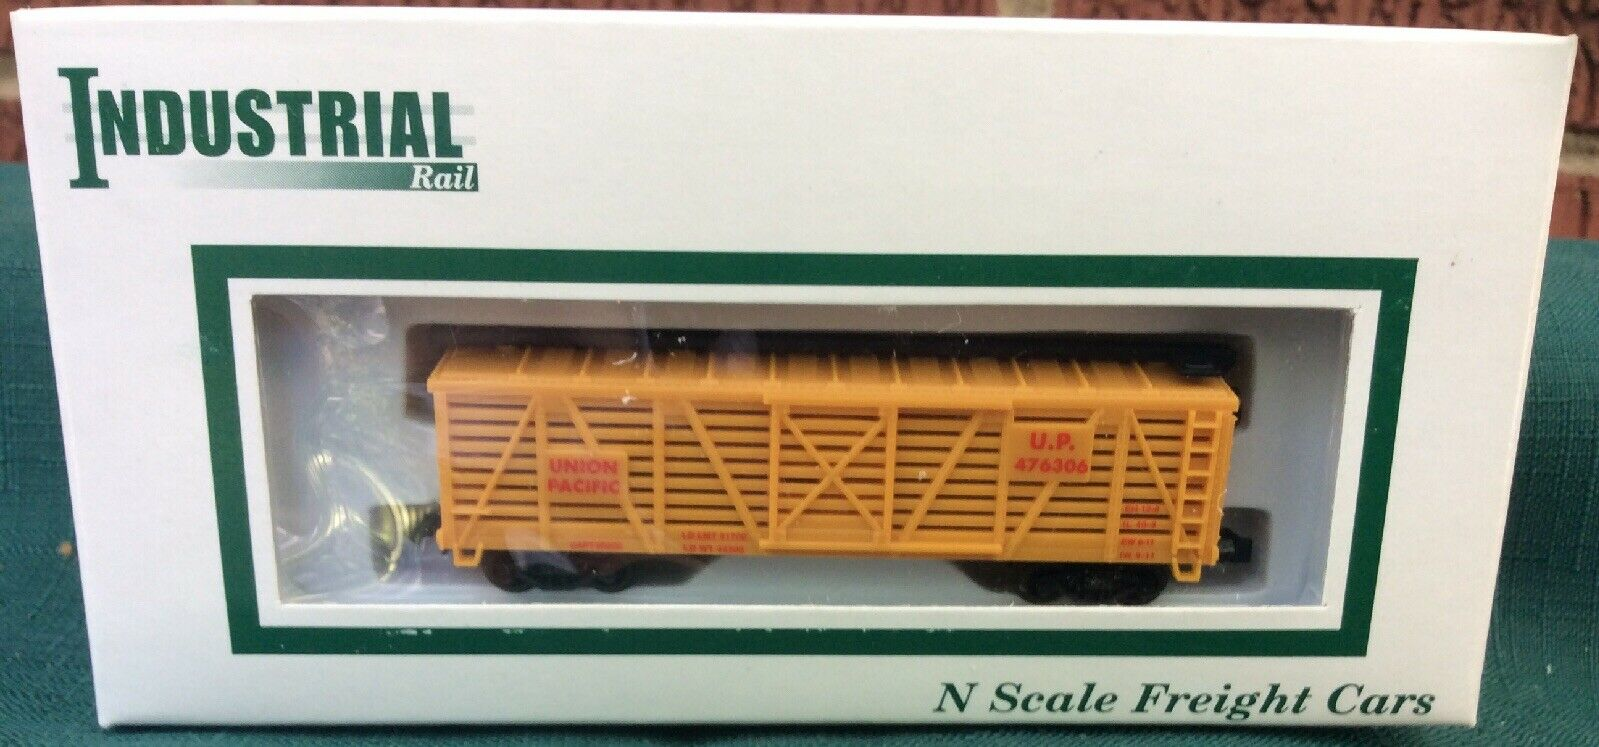 N Scale - Industrial Rail - 7793 - Stock Car, 40 Foot, Wood - Union Pacific - 476306